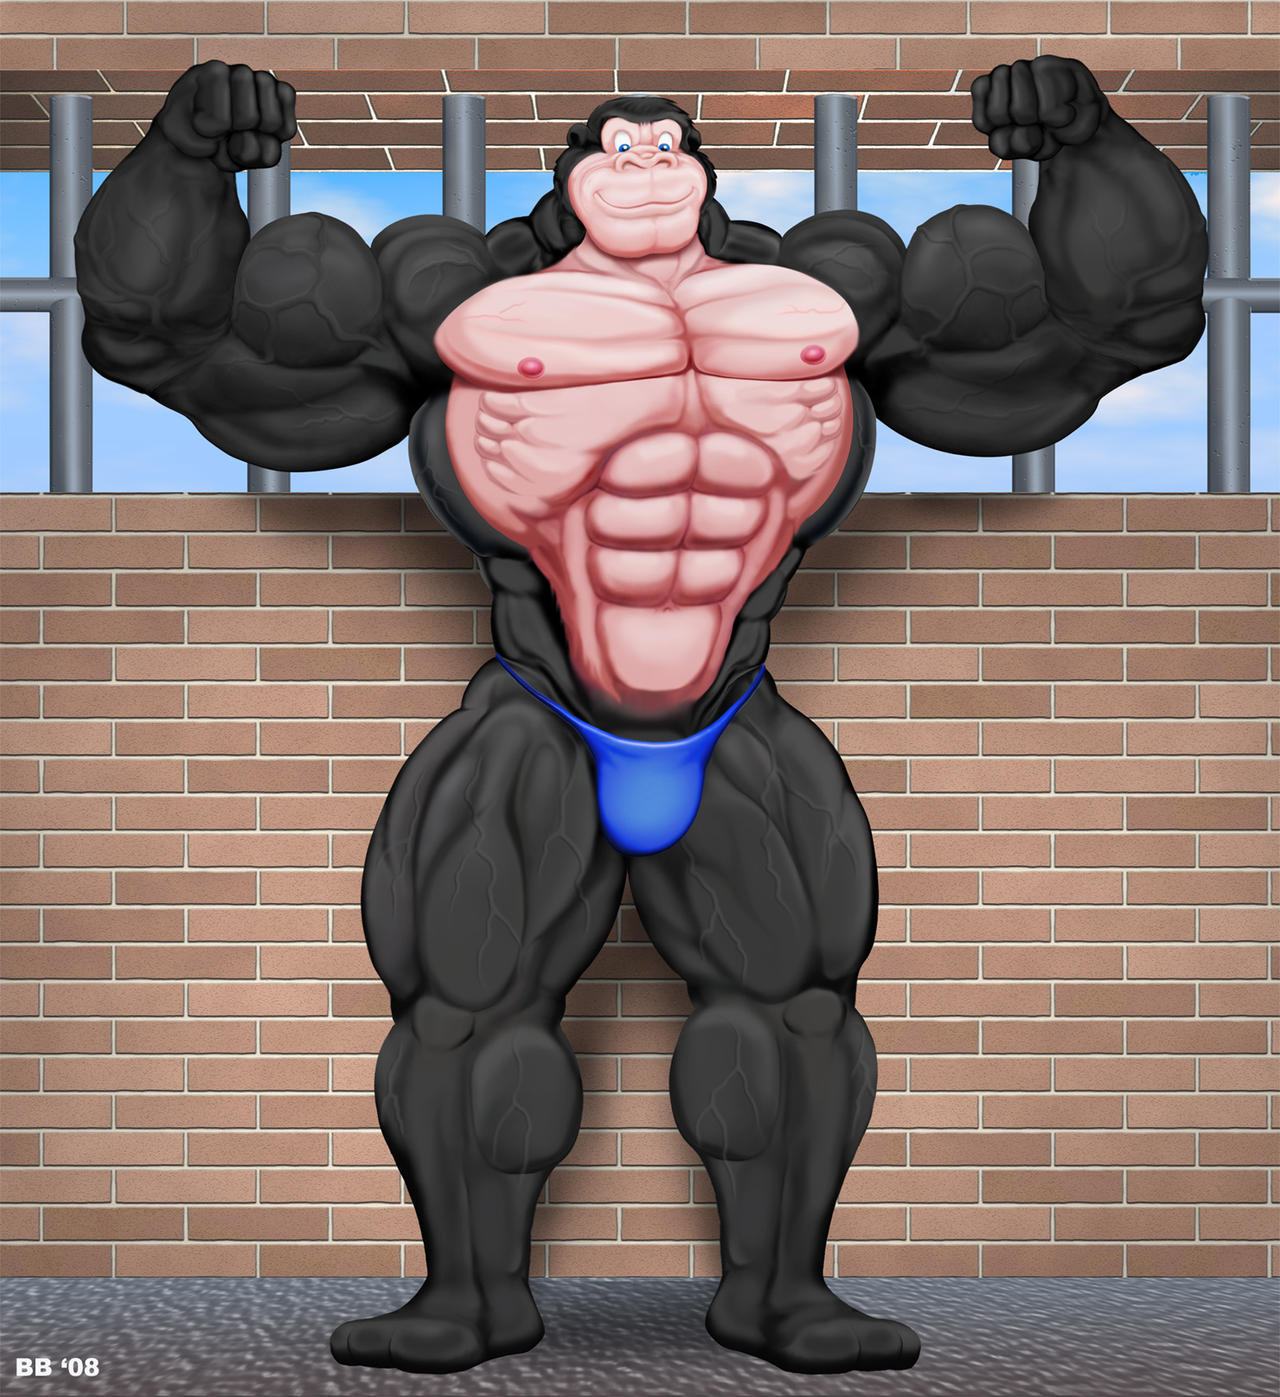 Big Gorilla Flex by Blathering on DeviantArt